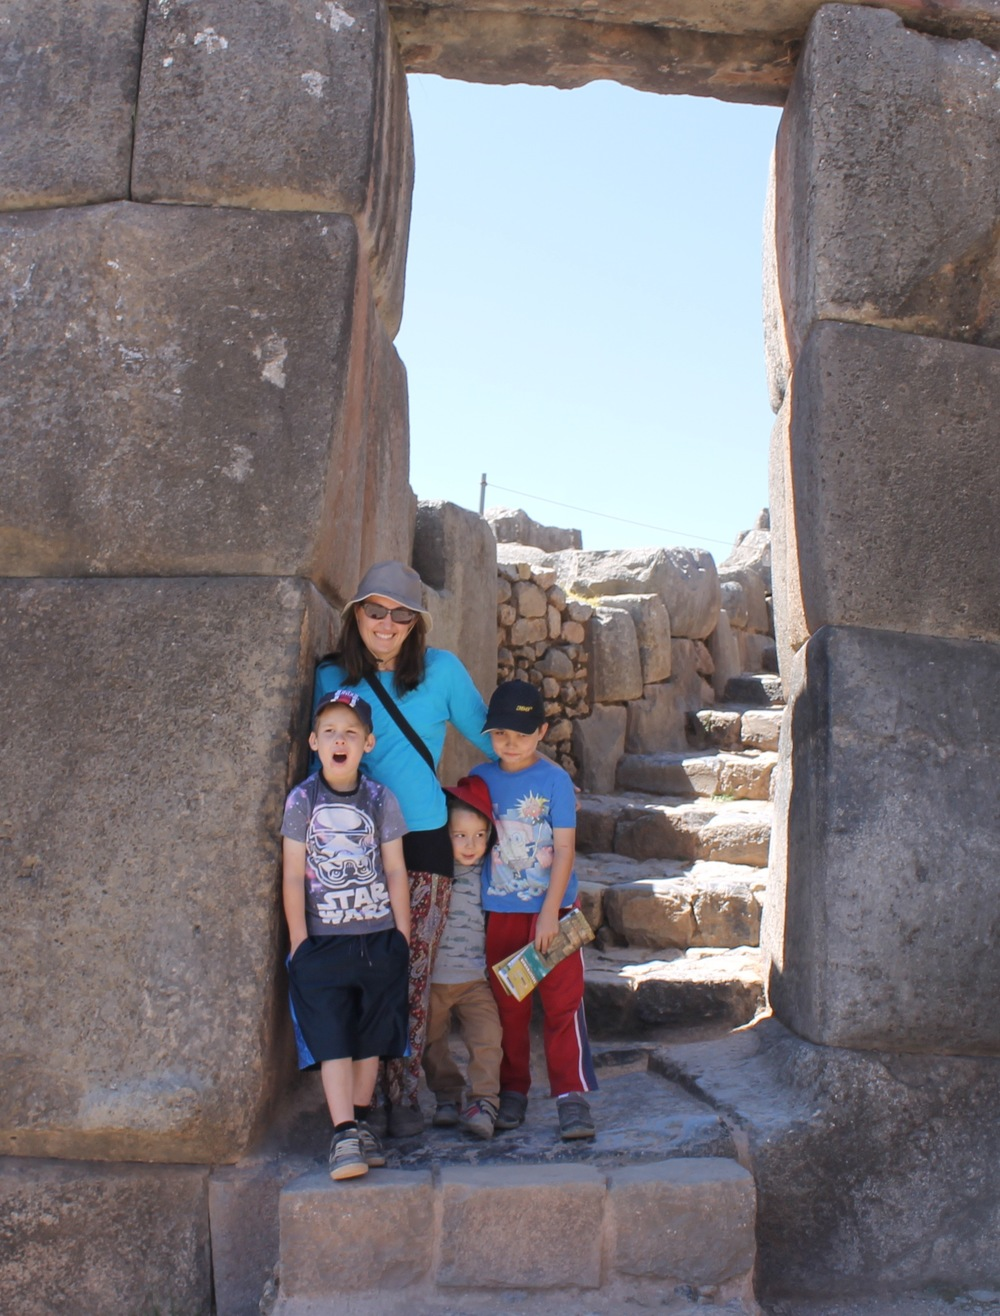 You can see how HUGE this doorway actually is now we are standing in it.  And yes, my boys don't always appear smiley in photos!